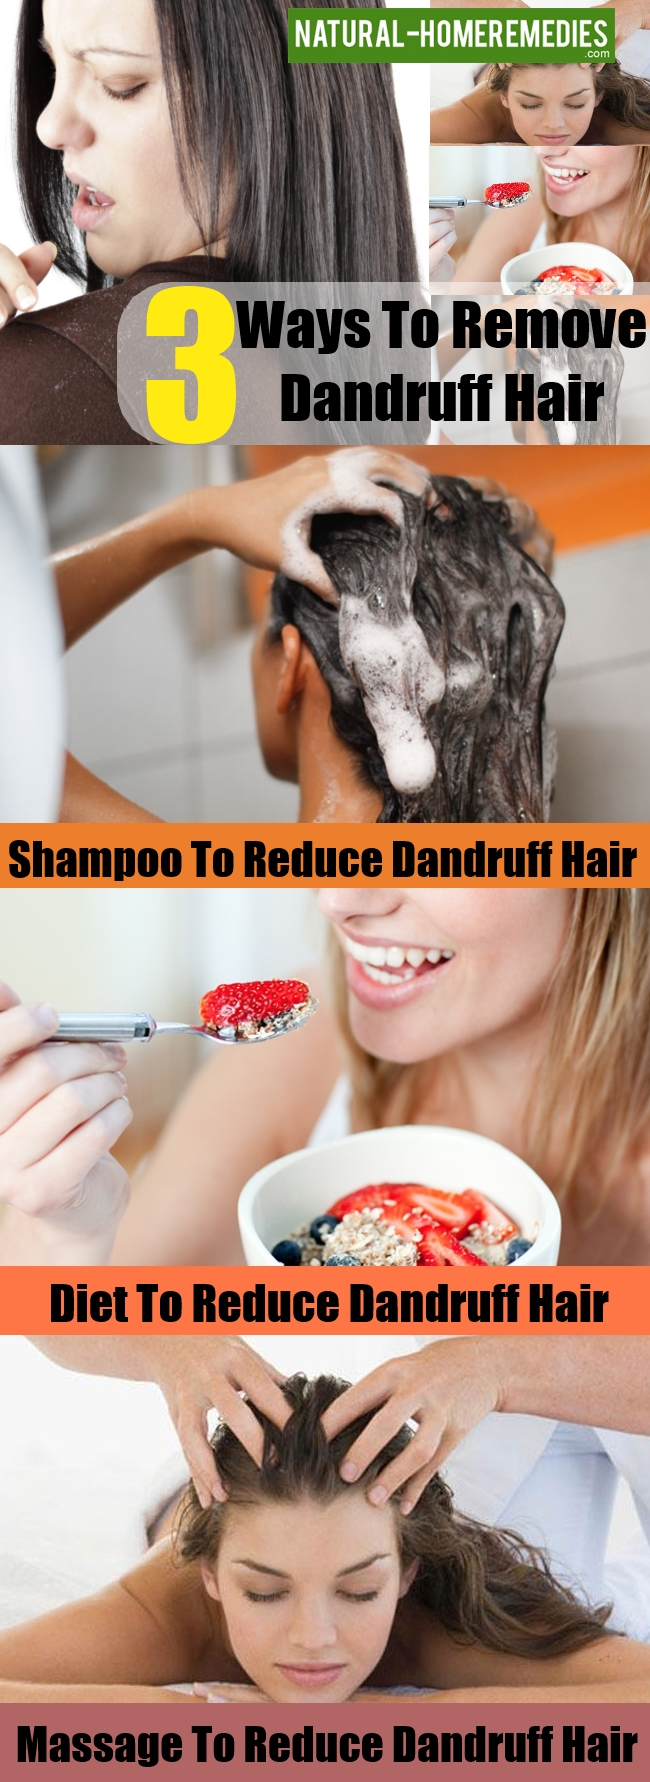 Ways To Remove Dandruff From Your Hair